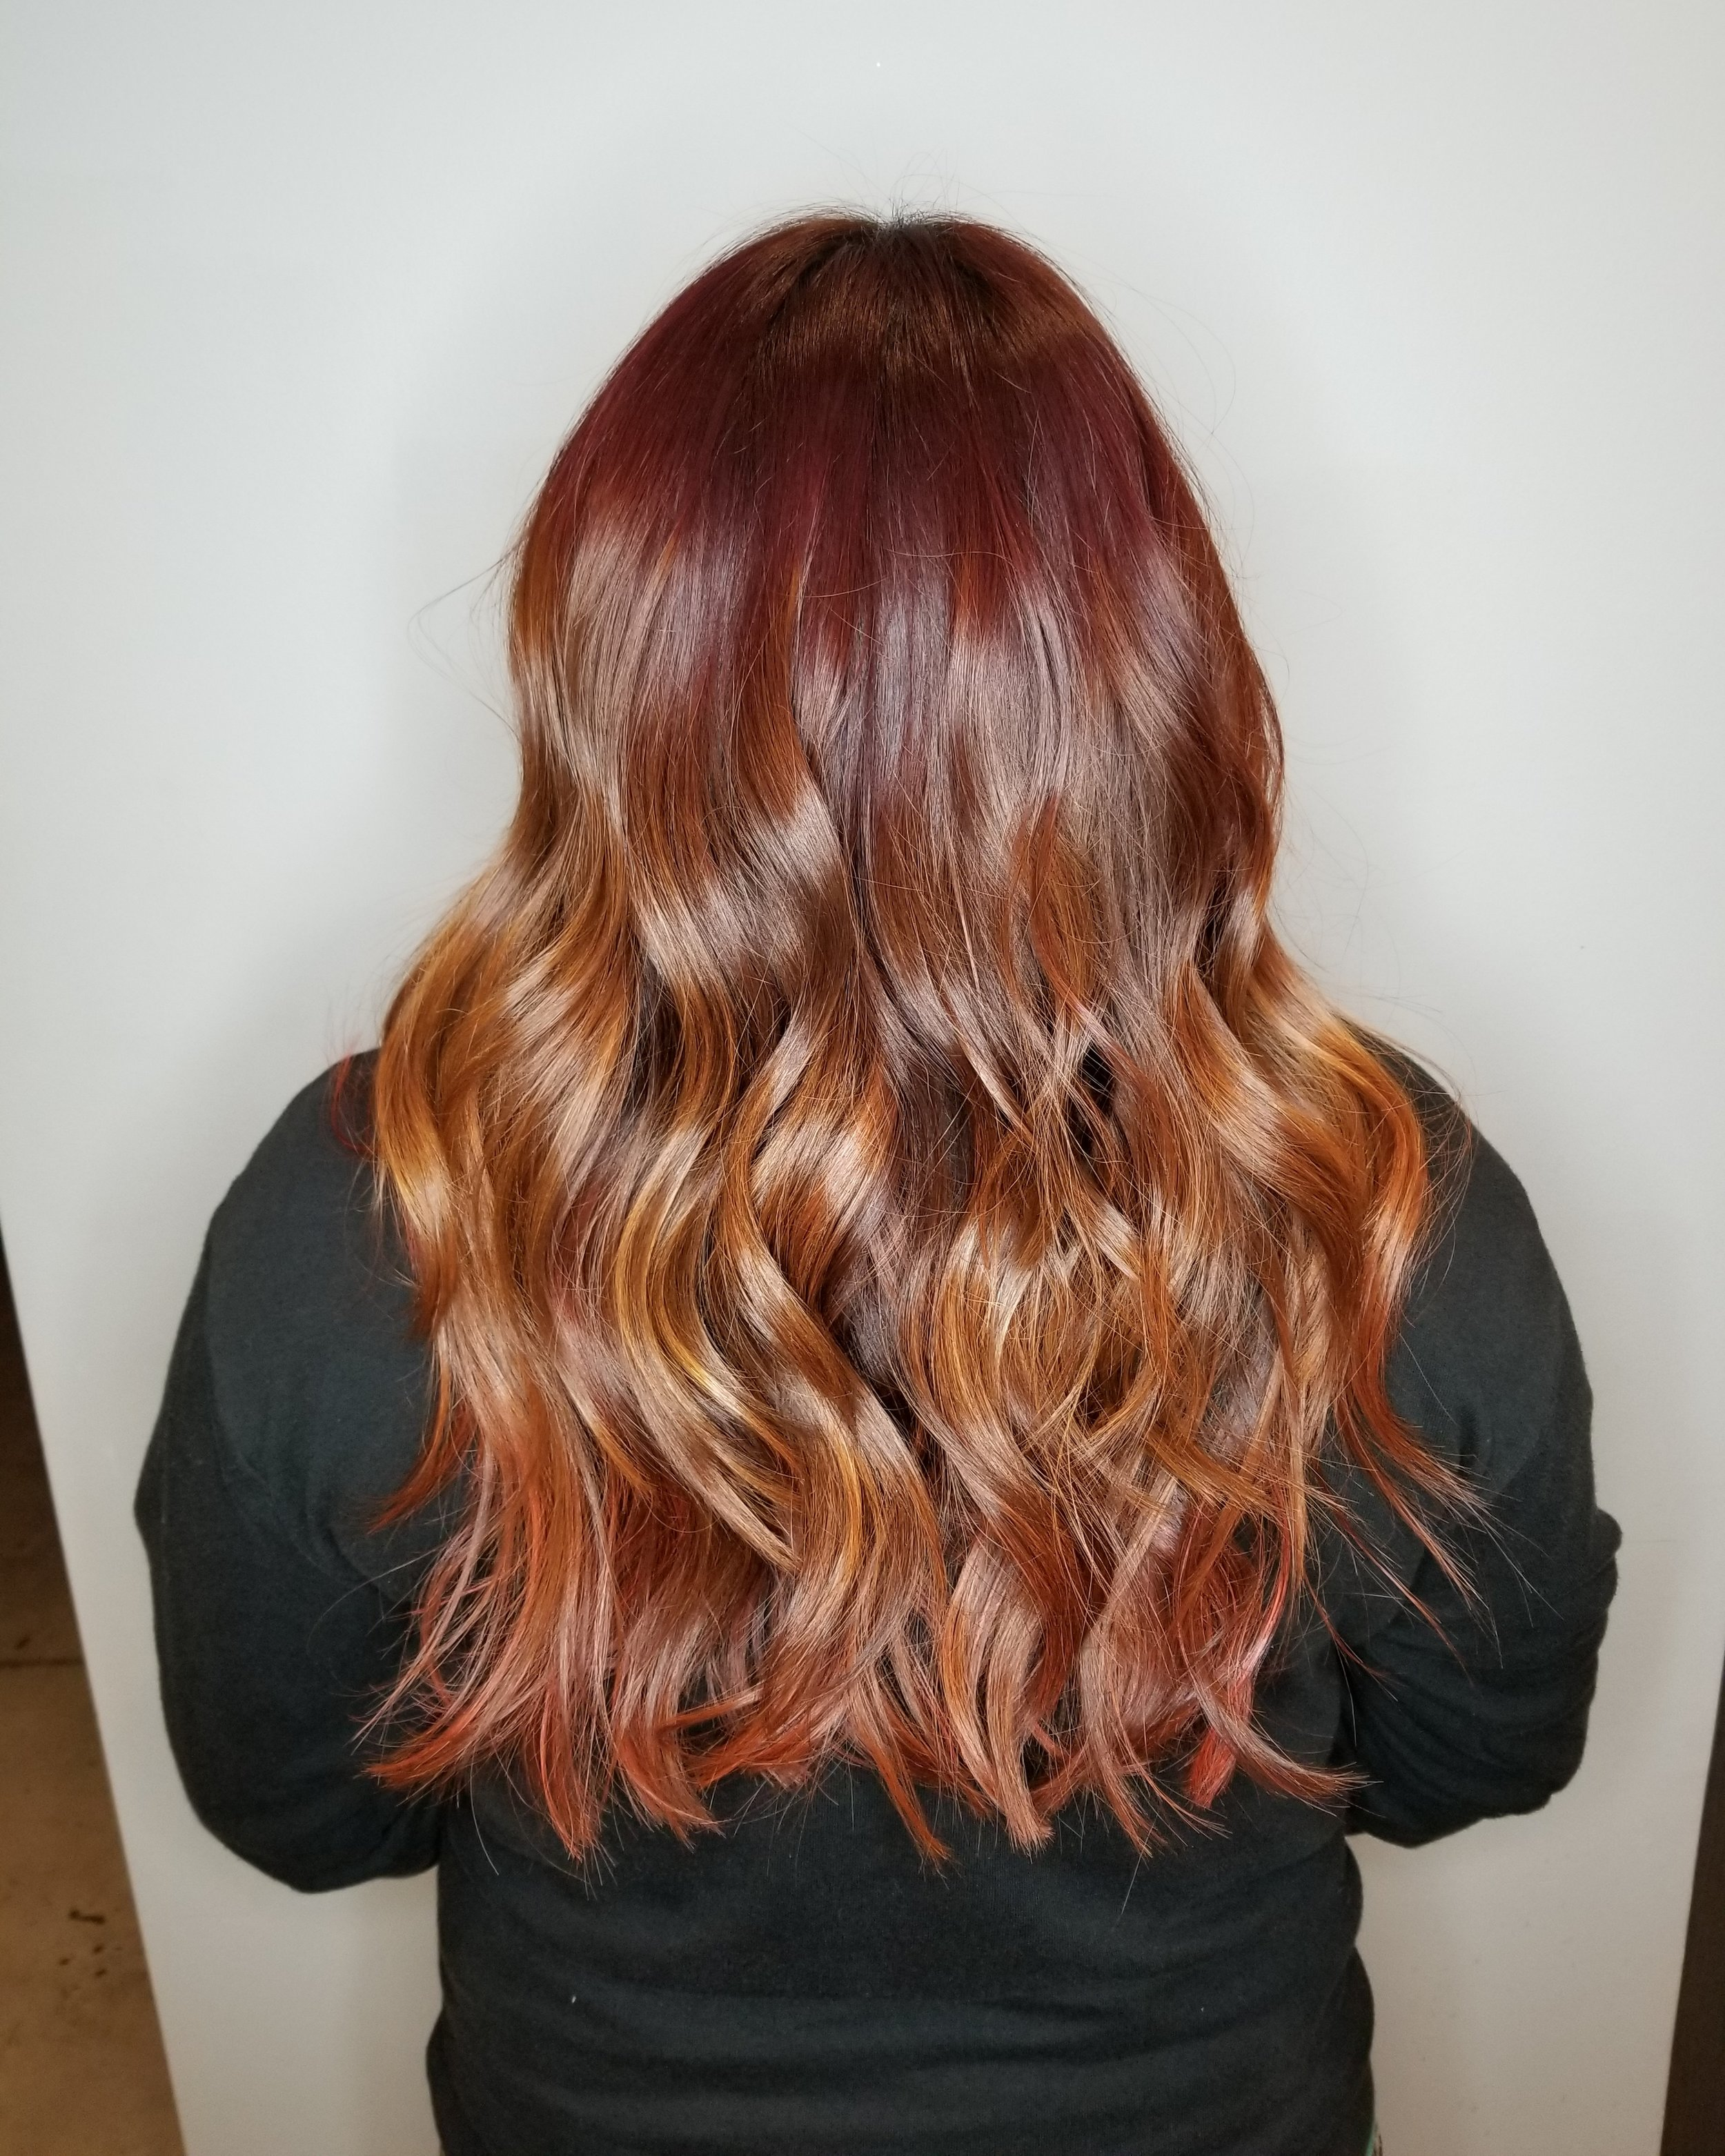 Cynthia Artistik Edge Hair Studio Lake Highlands Texas Red Hair.jpg